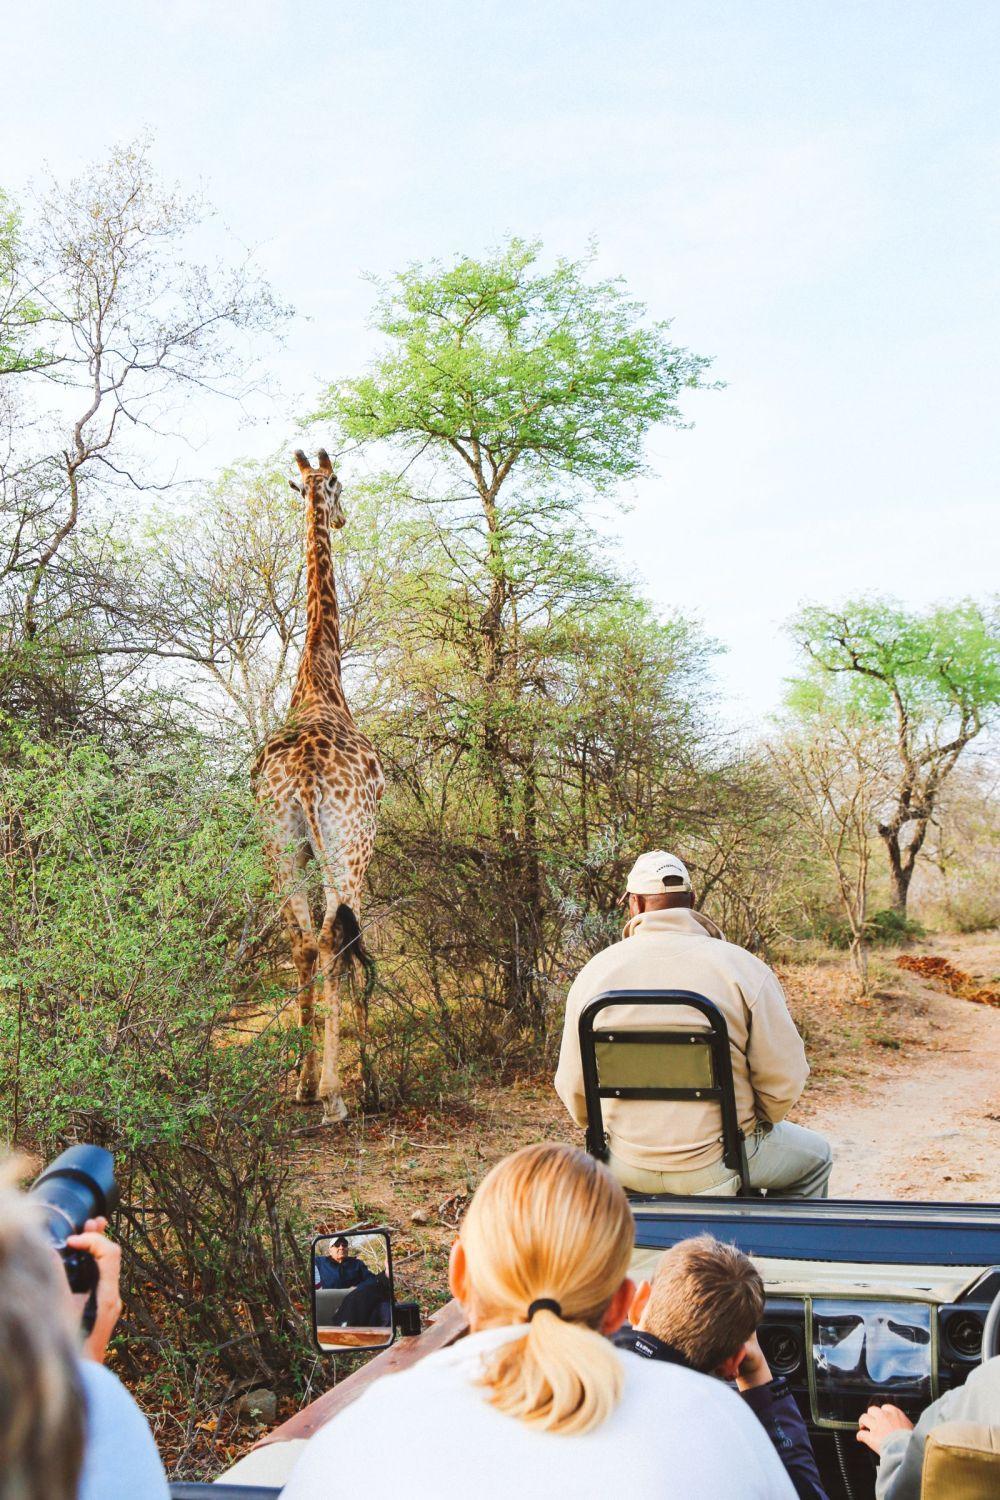 Midnight Lions, Skittish Giraffes And The Deadliest Of The Safari Big 5 In South Africa (5)